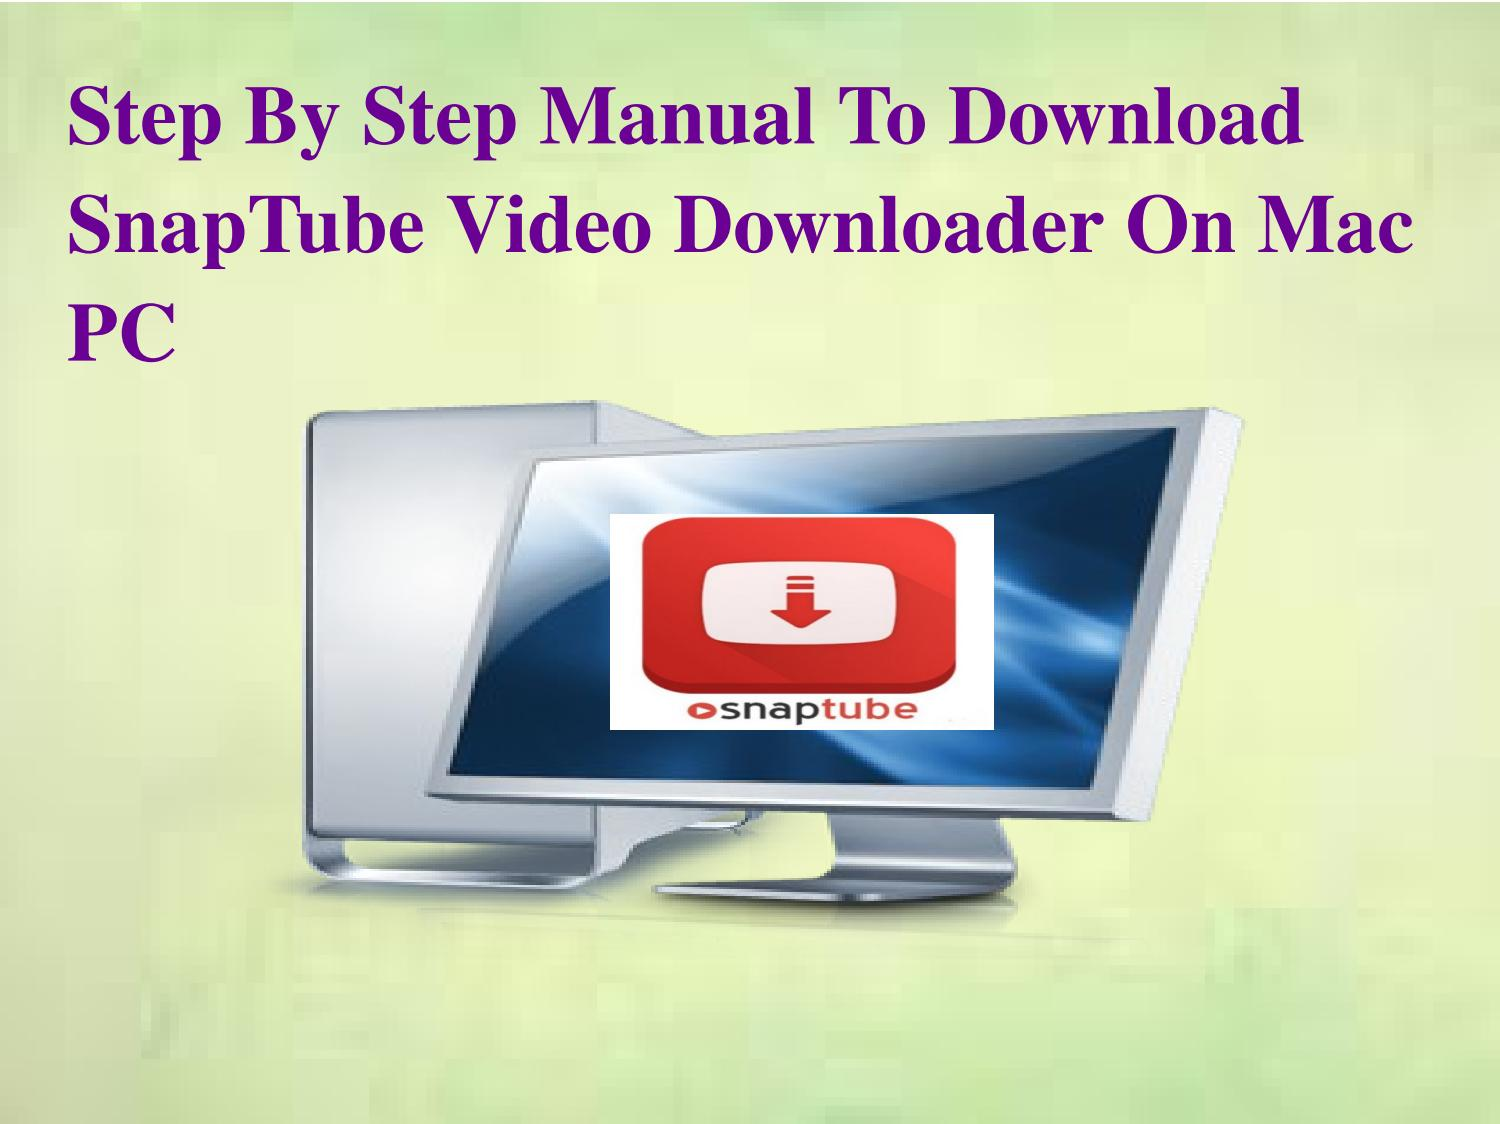 Step by step manual to download snaptube video downloader on